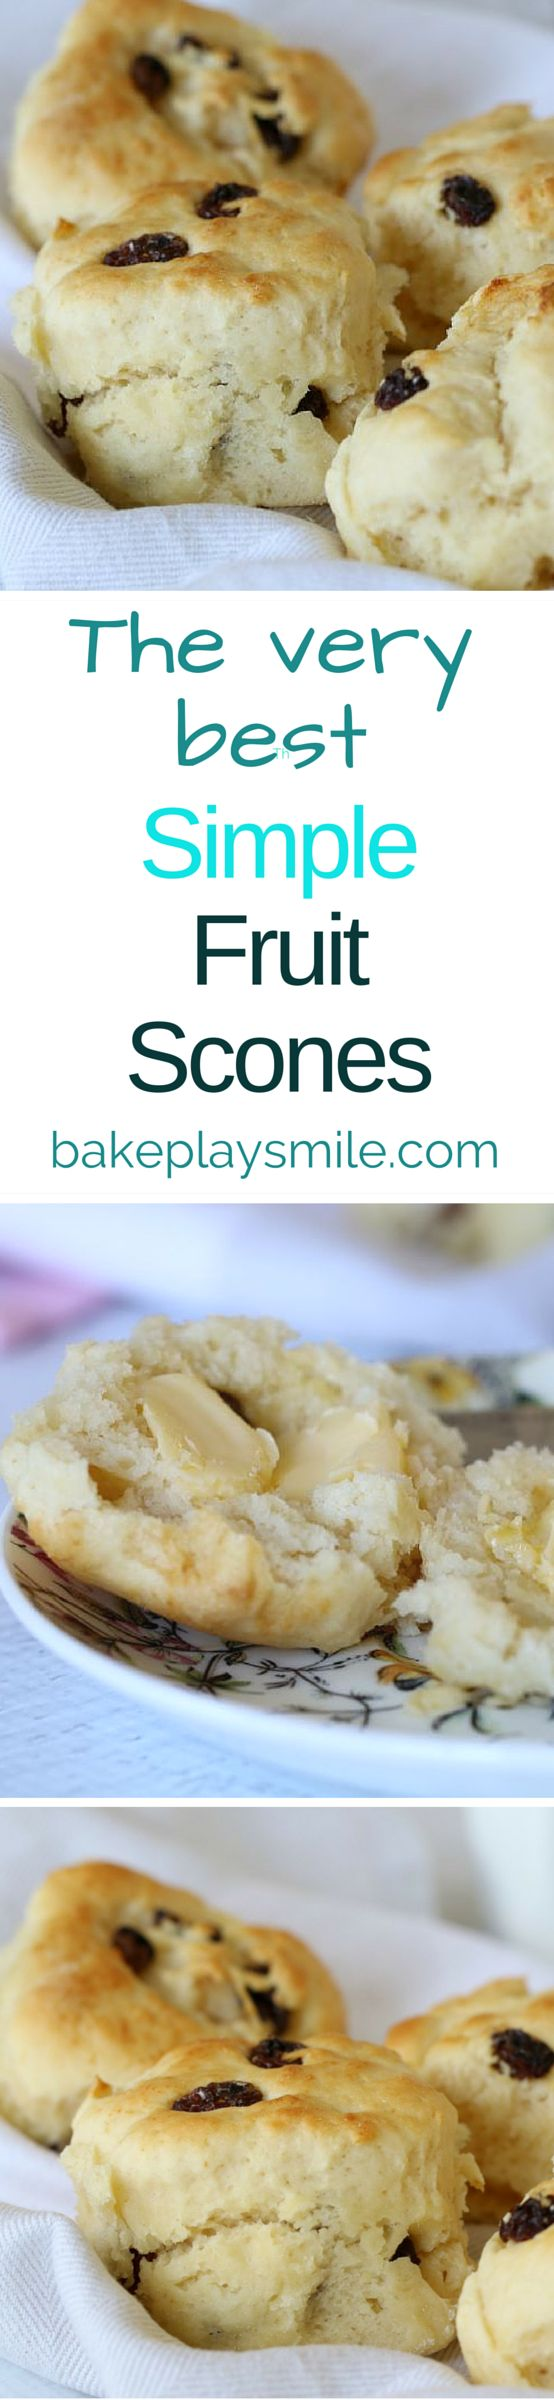 Everyone needs this delicious fruit scone recipe in their life! It has 1 secret…